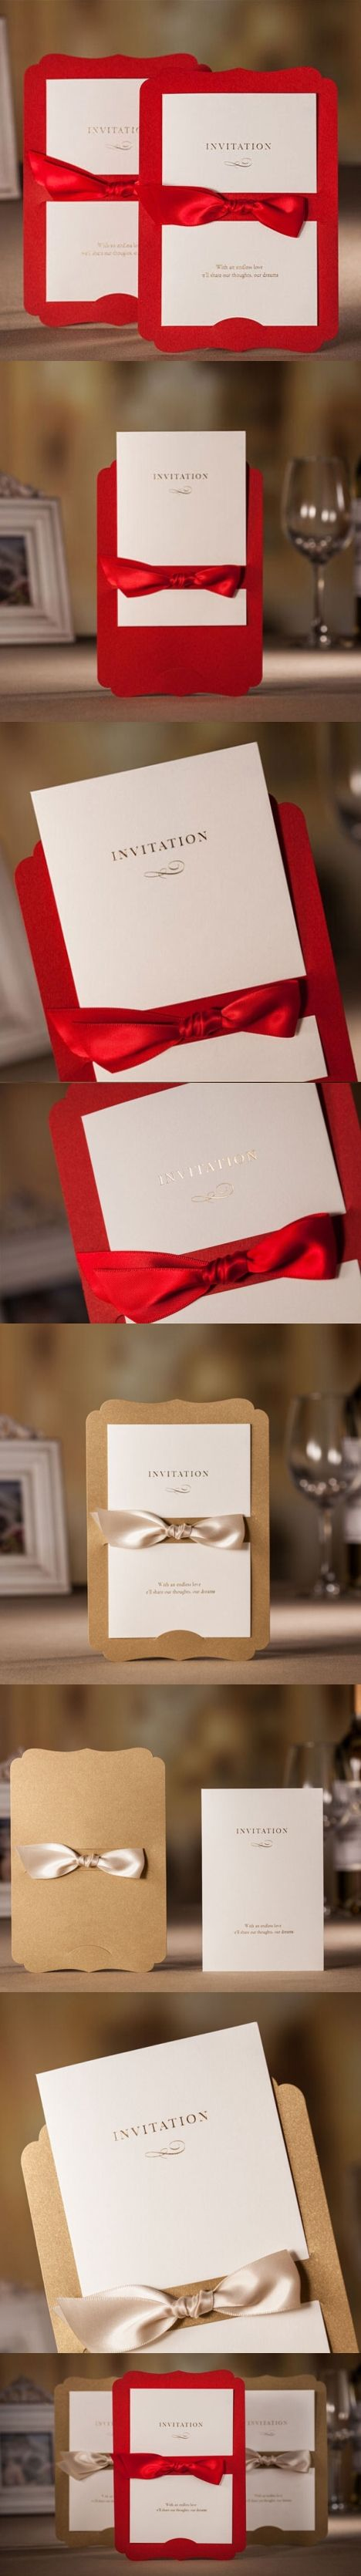 52 best Invitation ideas images on Pinterest | Invitation cards ...